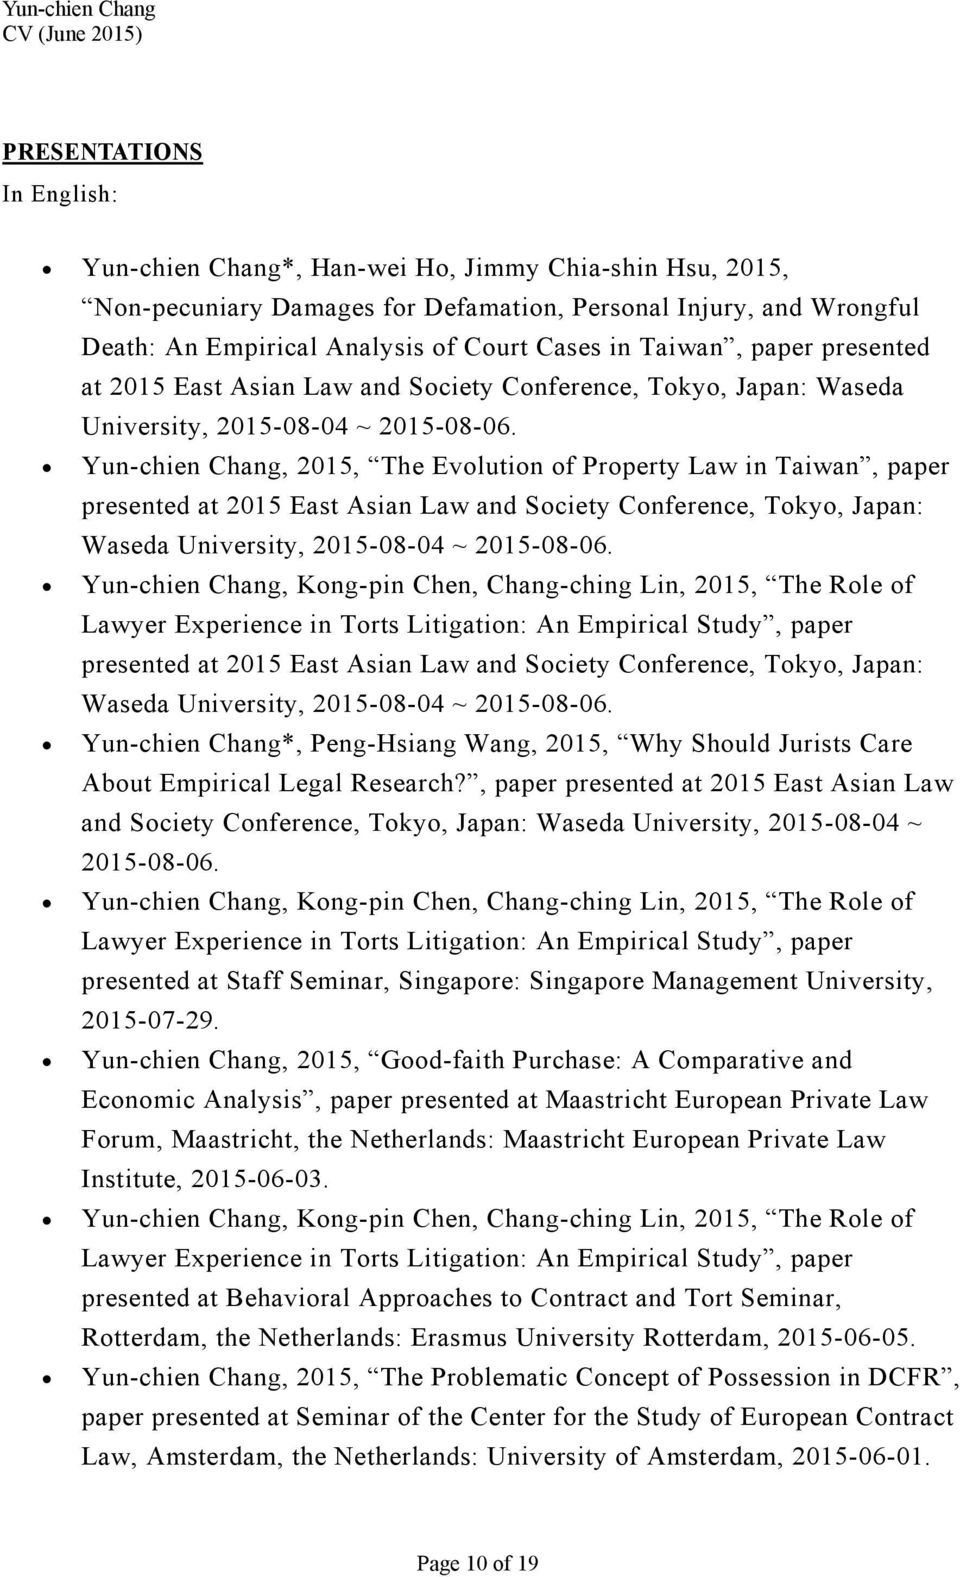 Yun-chien Chang, 2015, The Evolution of Property Law in  Yun-chien Chang, Kong-pin Chen, Chang-ching Lin, 2015, The Role of Lawyer Experience in Torts Litigation: An Empirical Study, paper presented